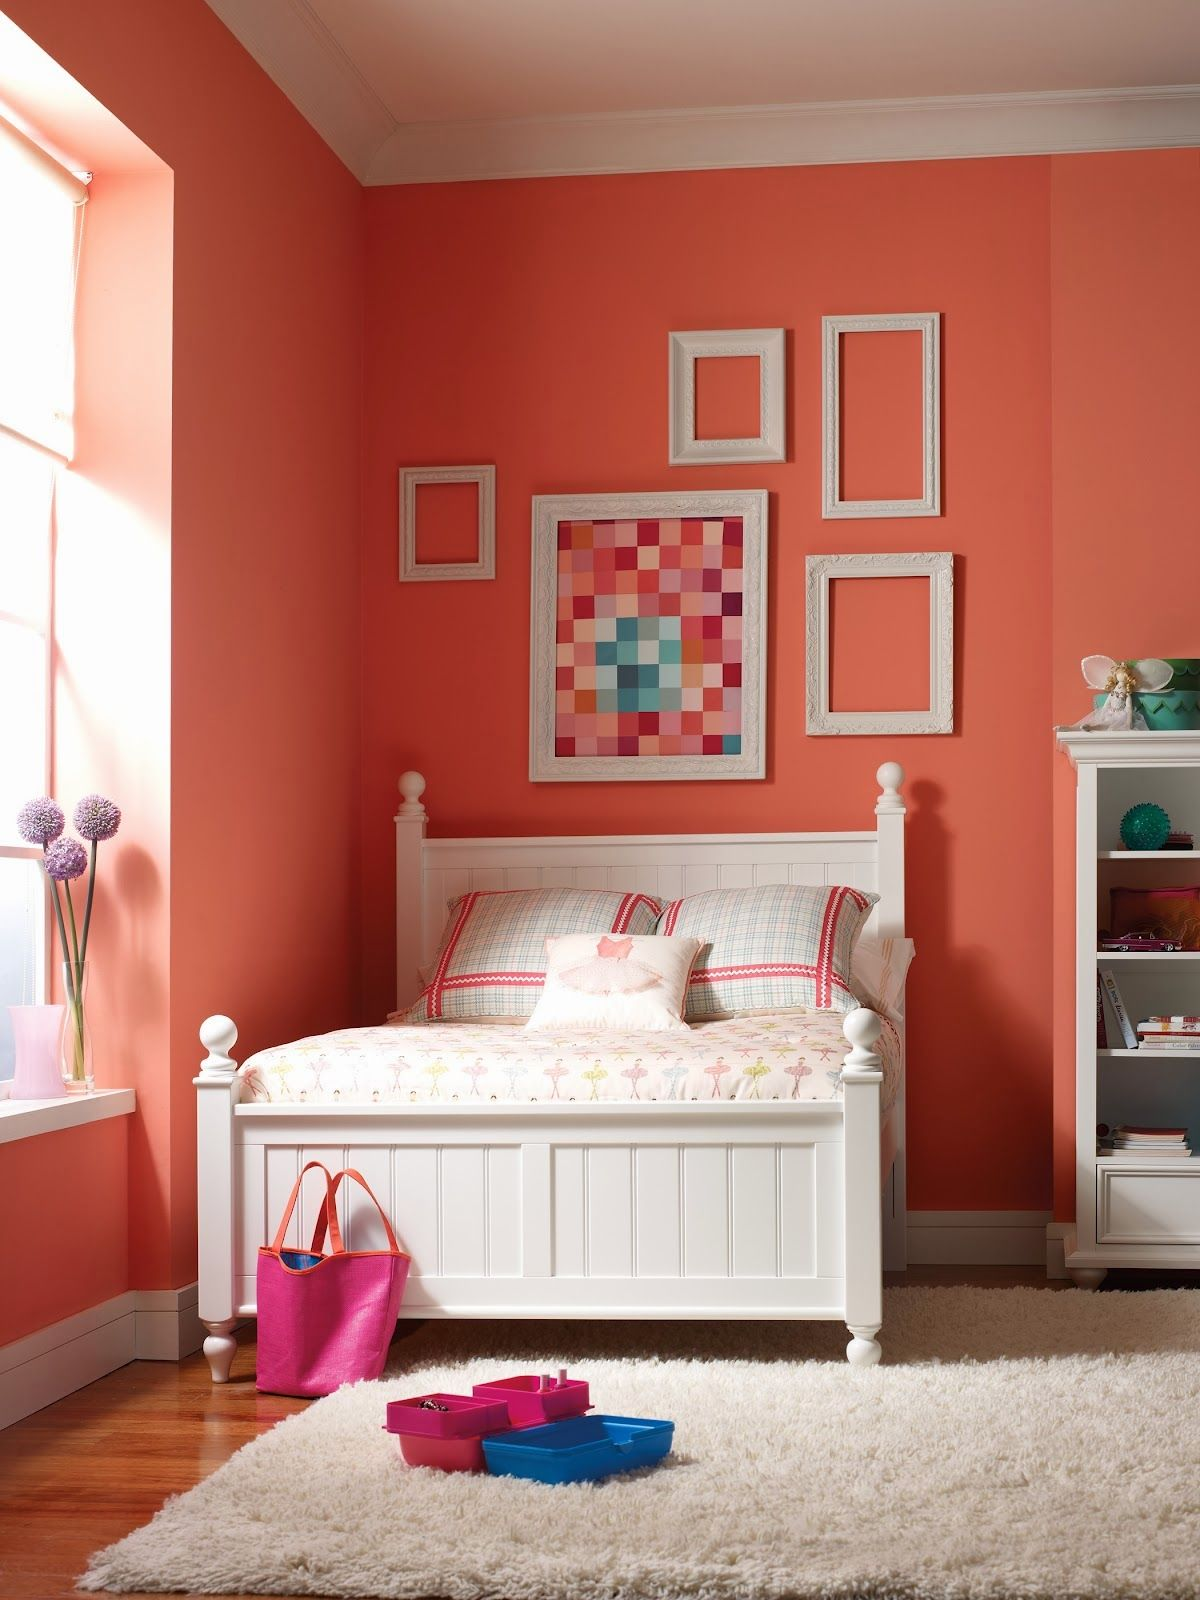 Habitaciones para adolescentes color coral dormitorios for Decoracion pared dormitorio